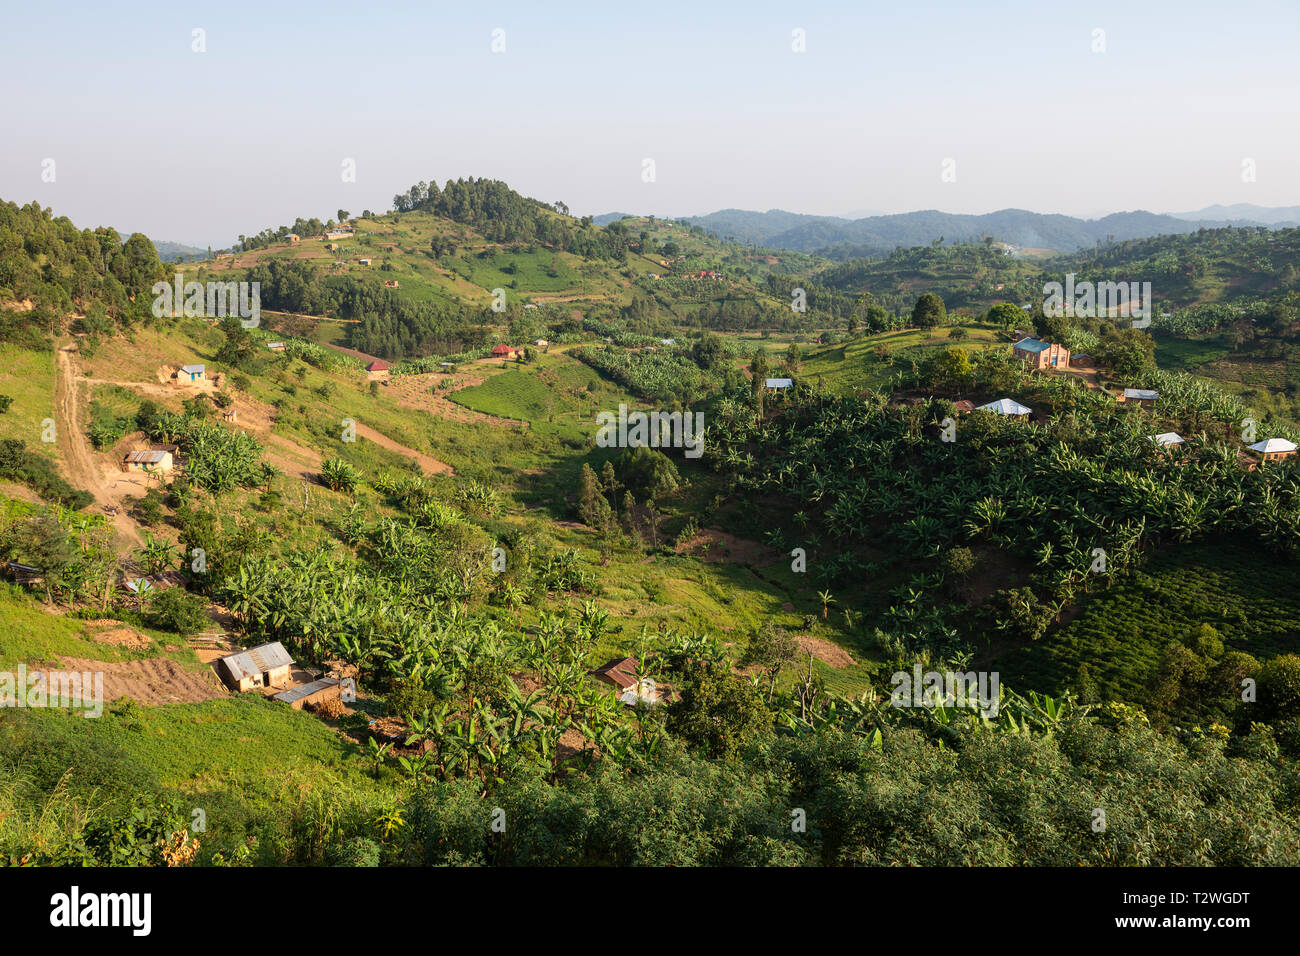 Banana and tea plantations in hill country north of Lake Bunyonyi in South West Uganda, East Africa - Stock Image